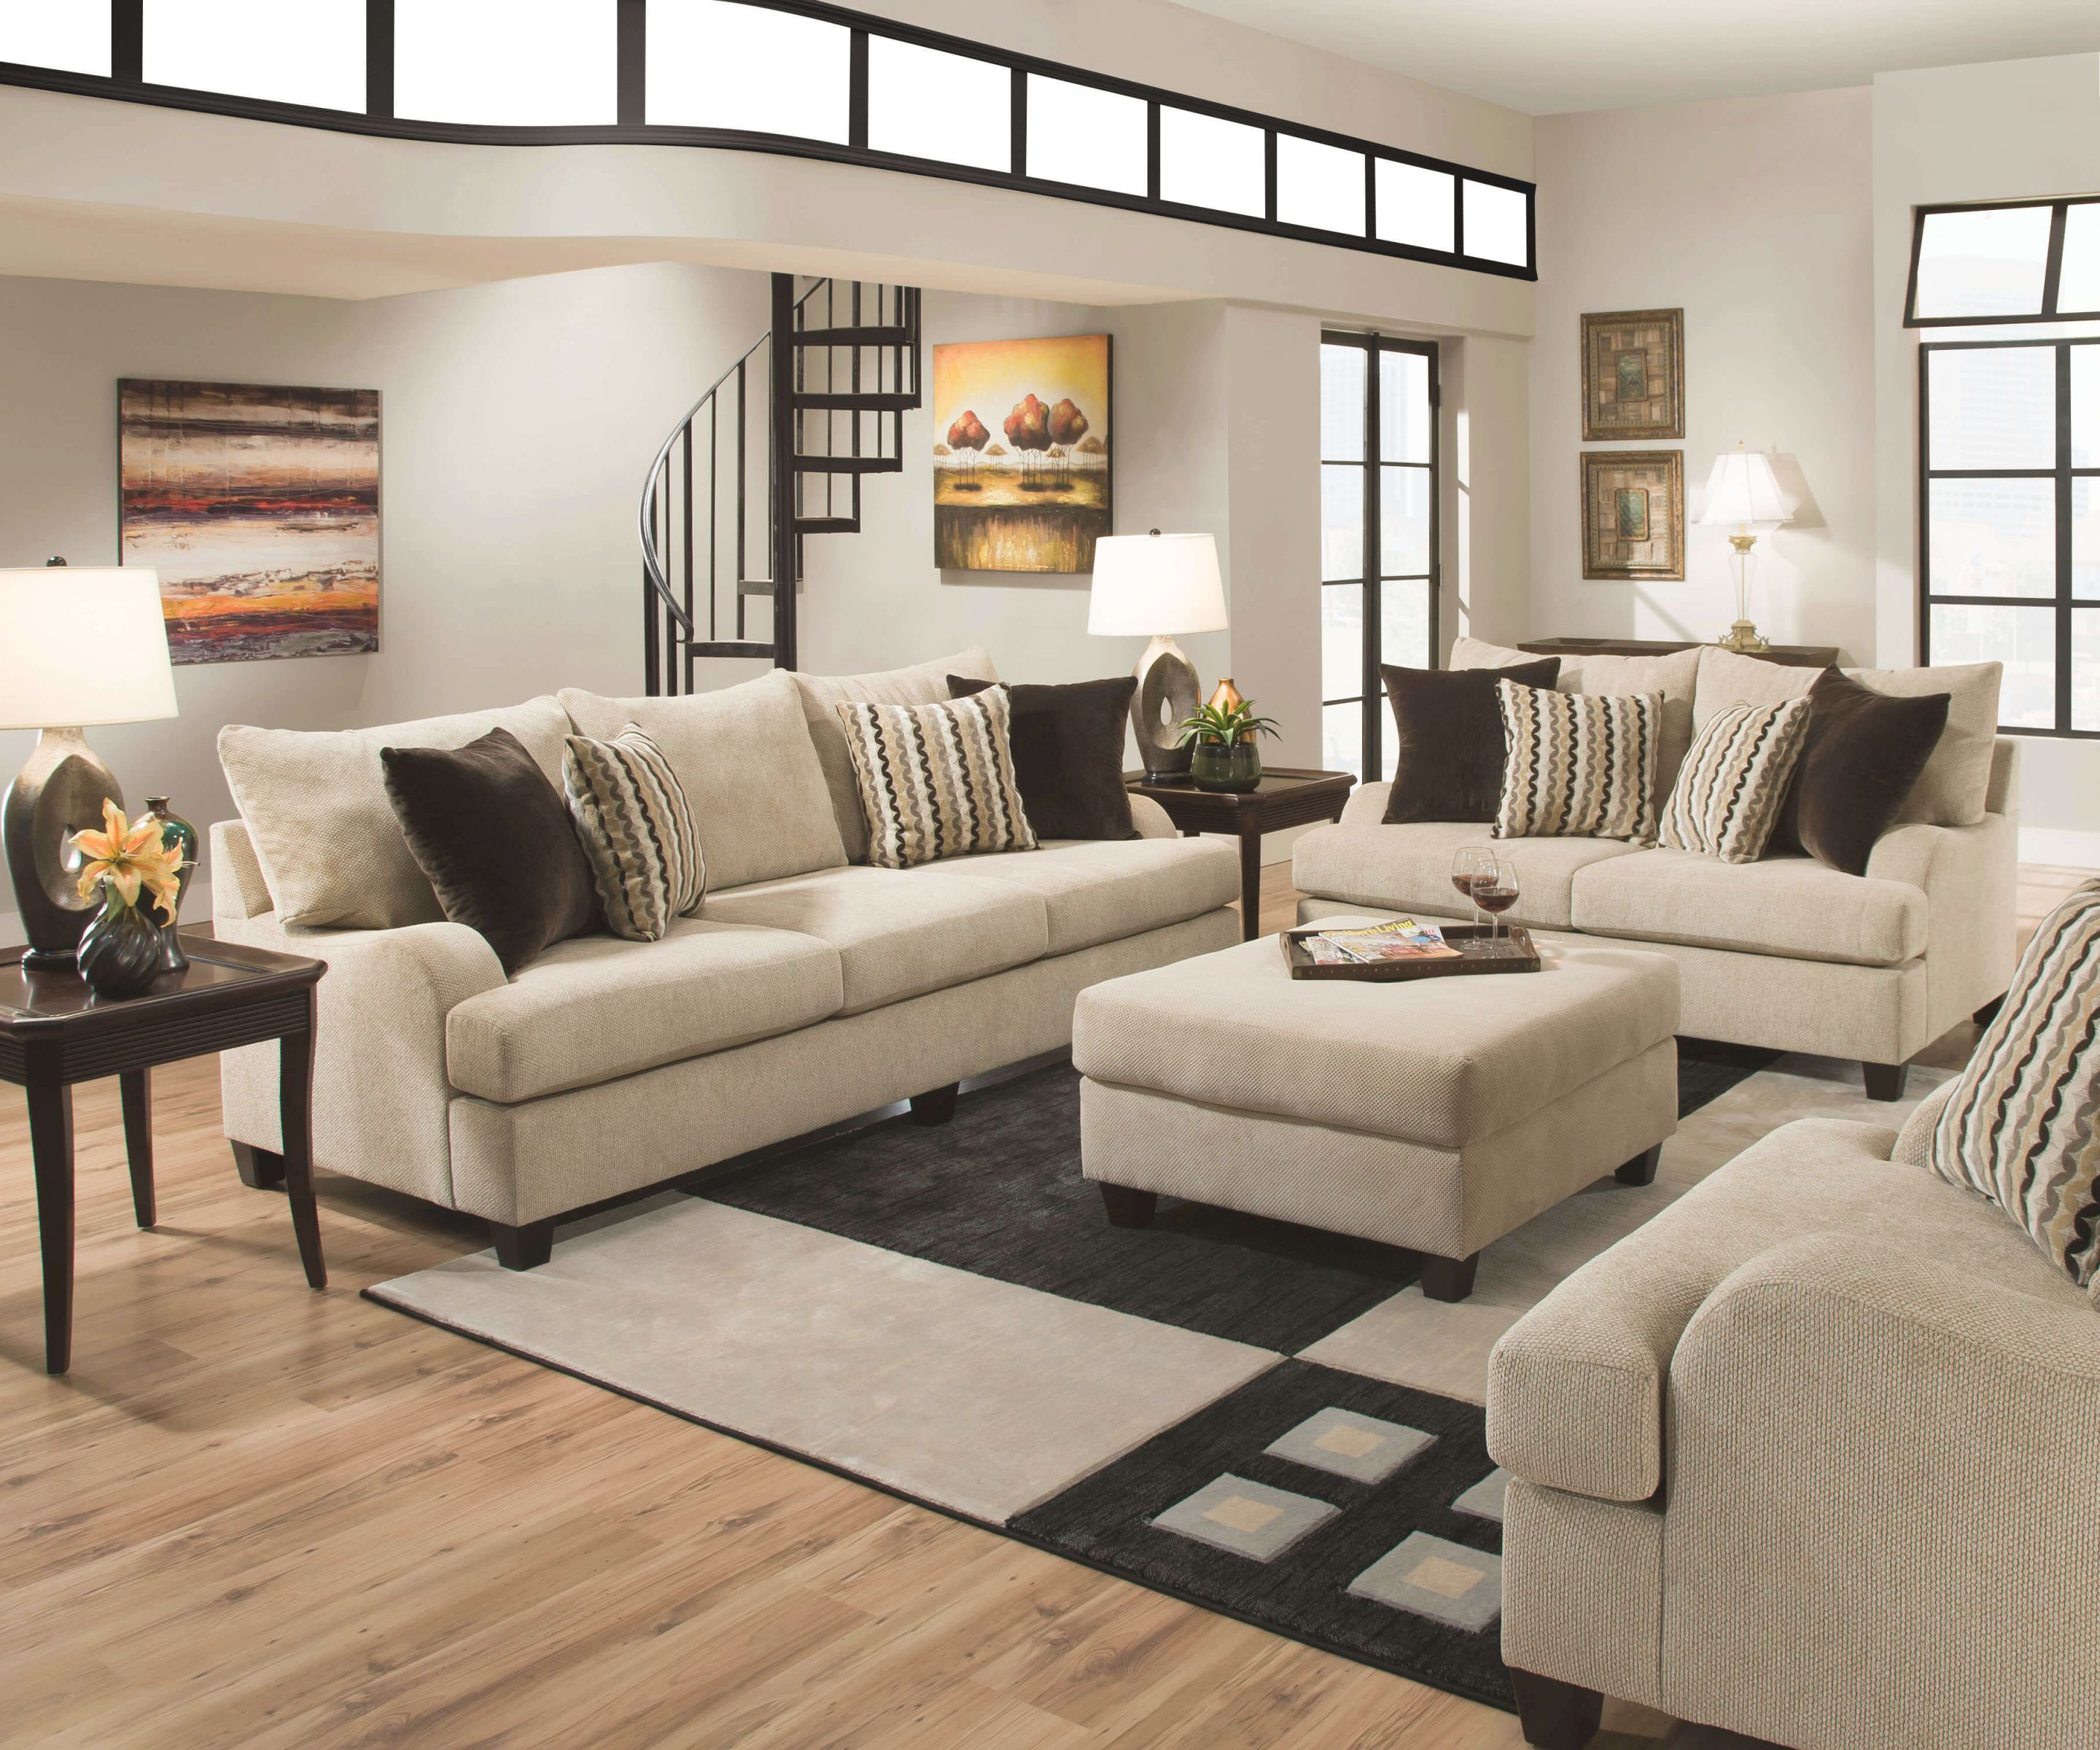 Fresh Living Room Furniture Layout Awesome Decors